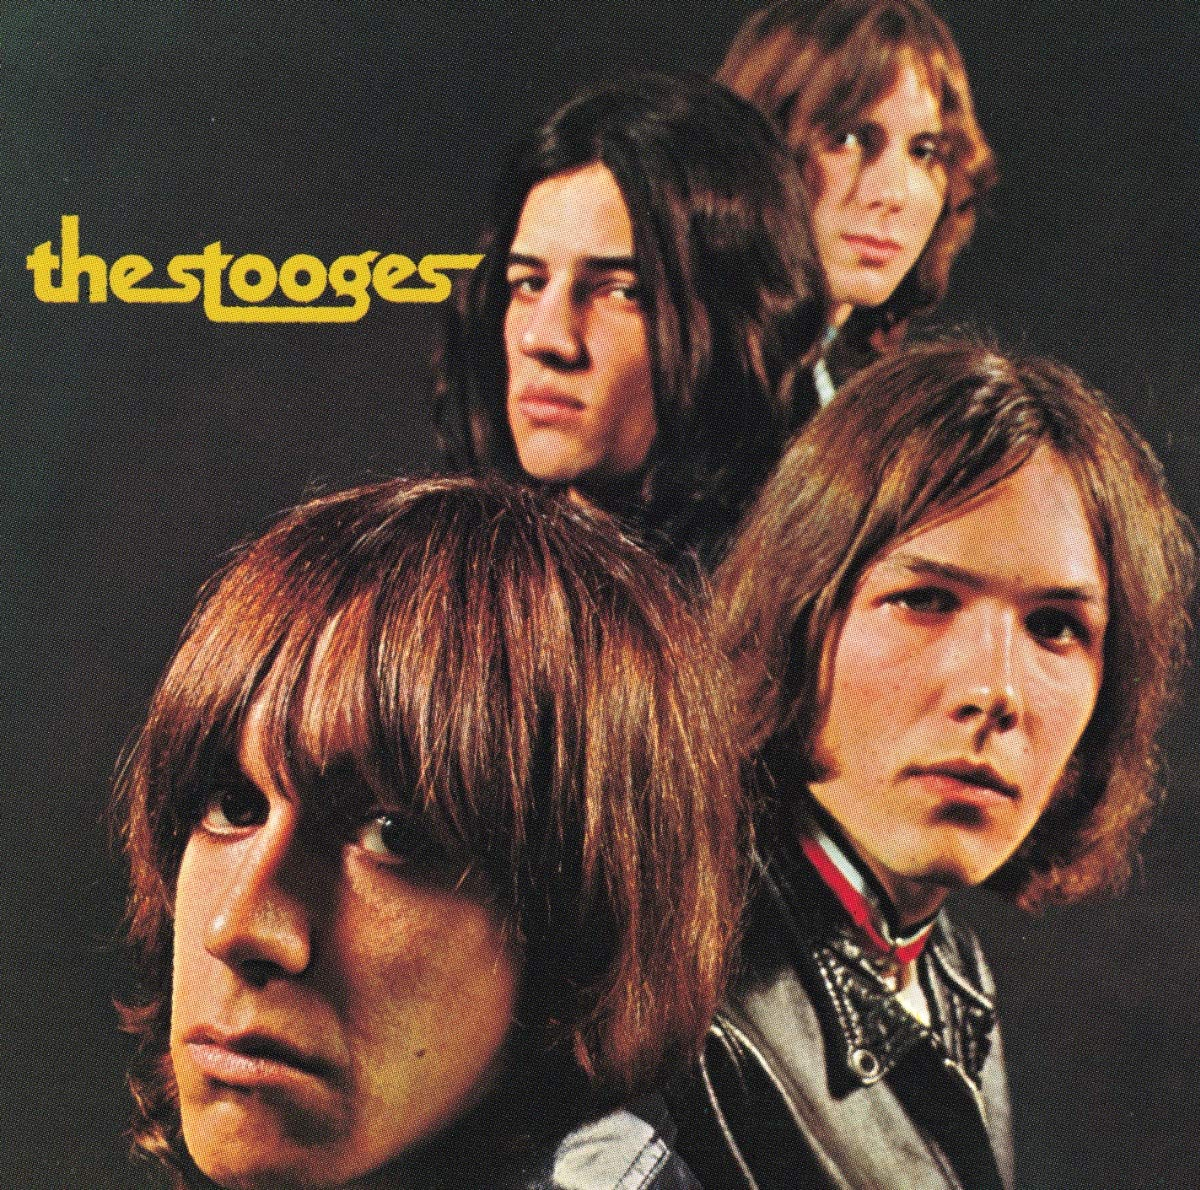 The Stooges: Stooges: Amazon.fr: Musique